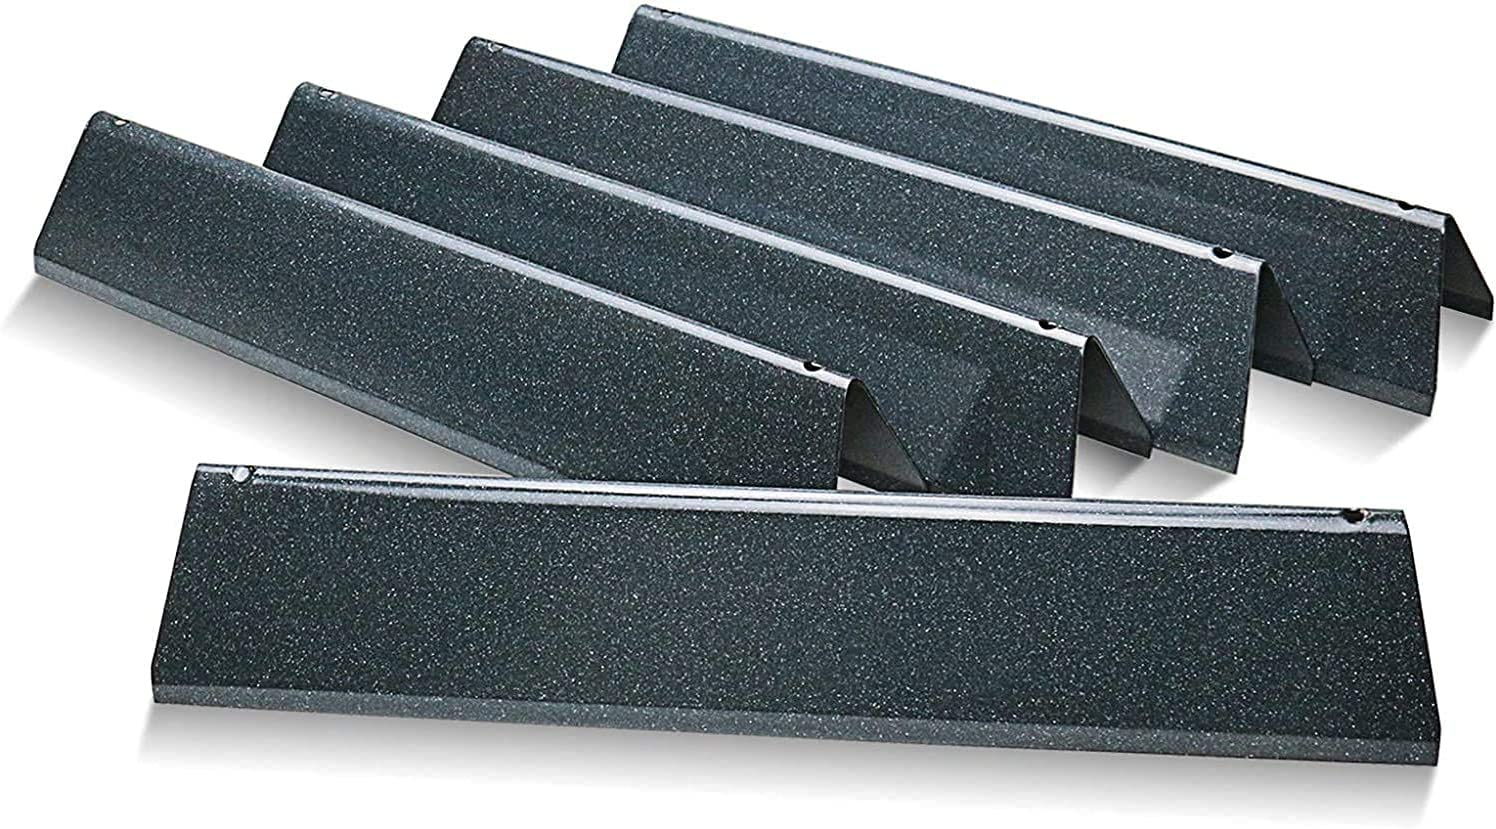 15.3-Inch Durable New sales Flavorizer Bars for Year-end annual account Weber Gril Control Front